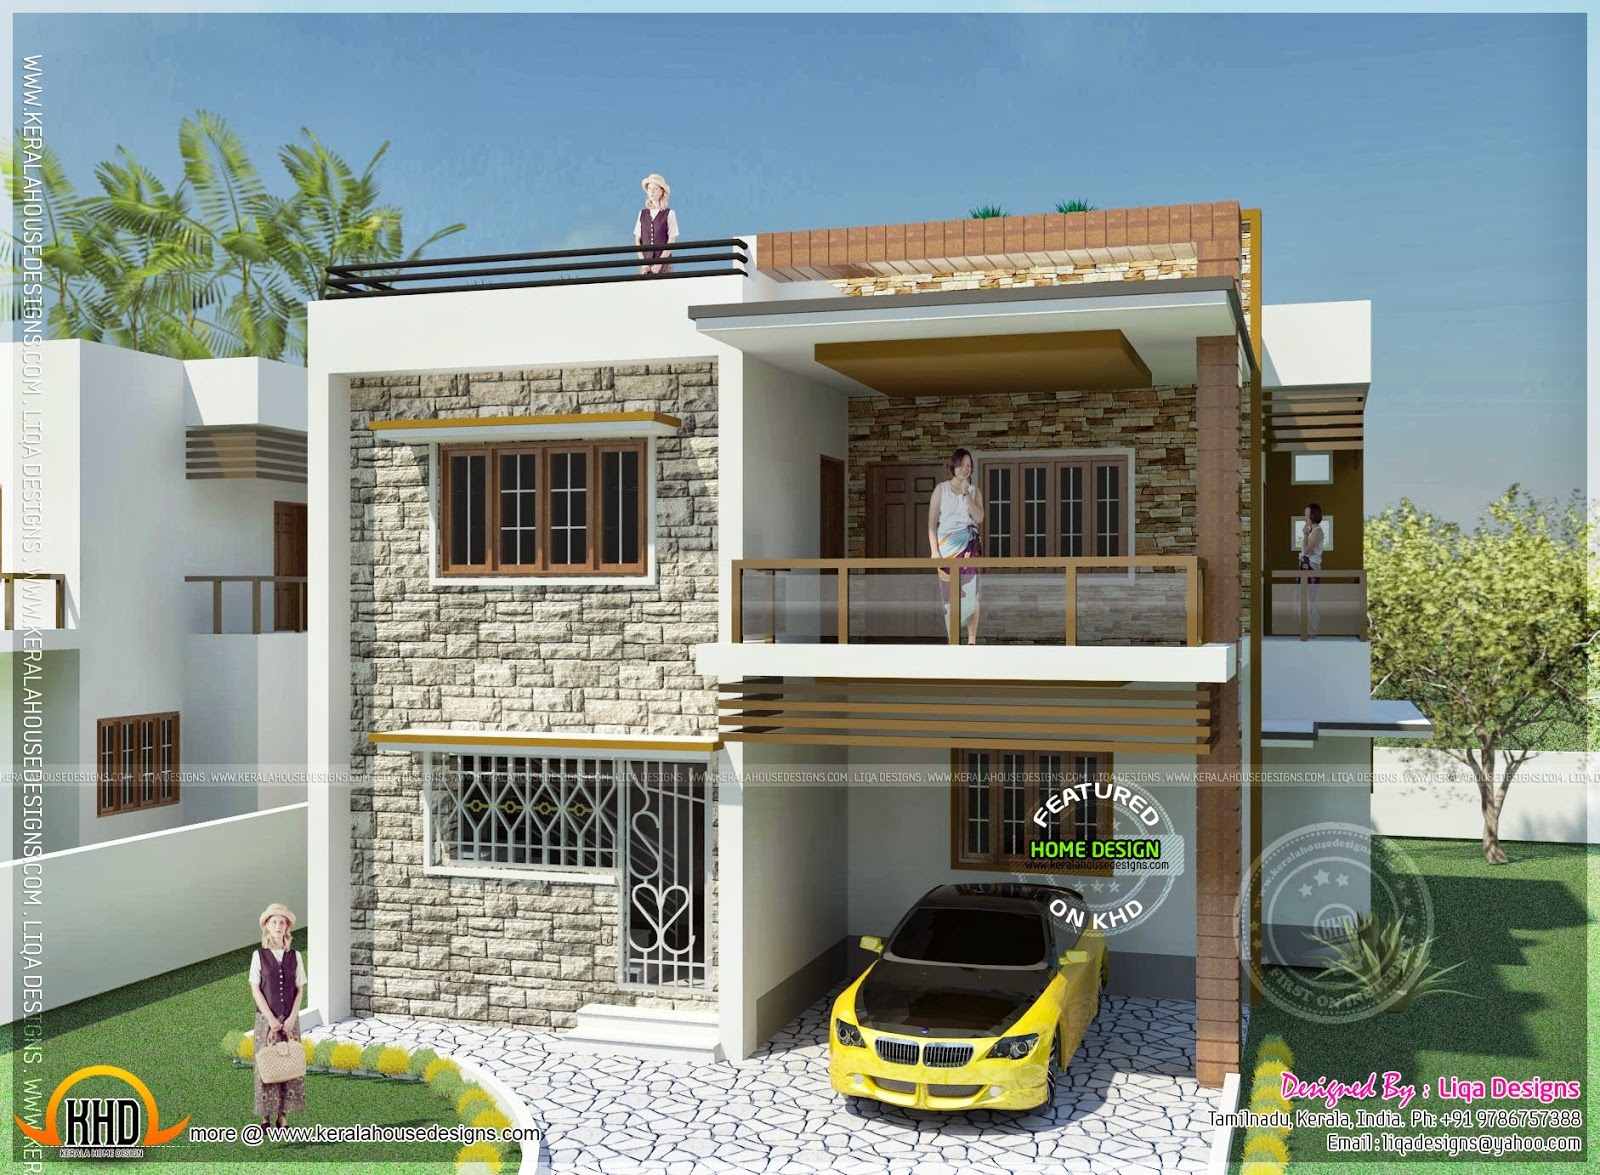 home design interior singapore Double storied Tamilnadu house design – Two Floor House Plans And Elevation